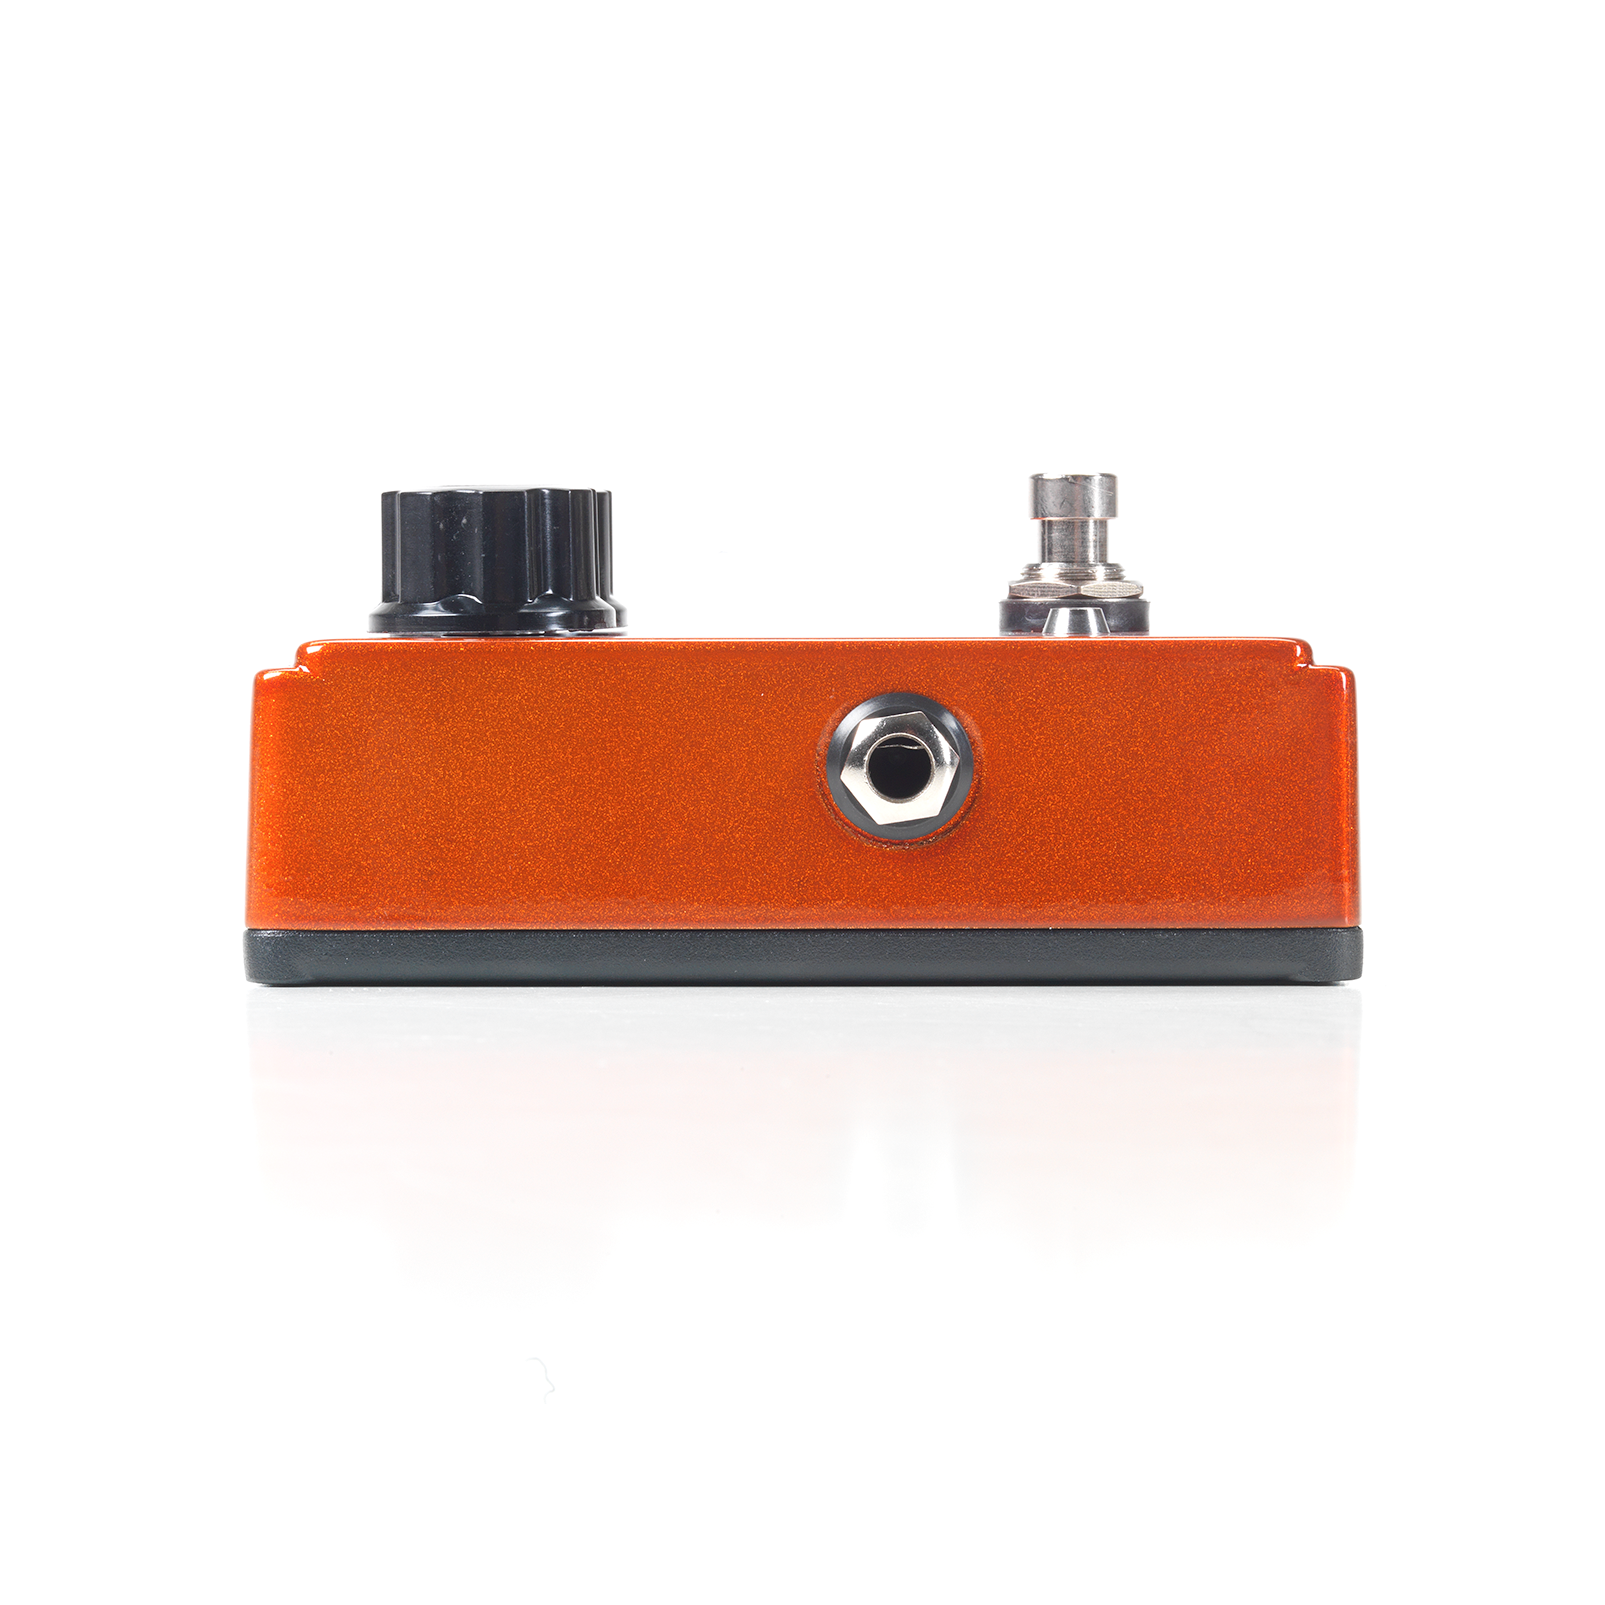 Compressor 280 - Orange - Compressor - Left